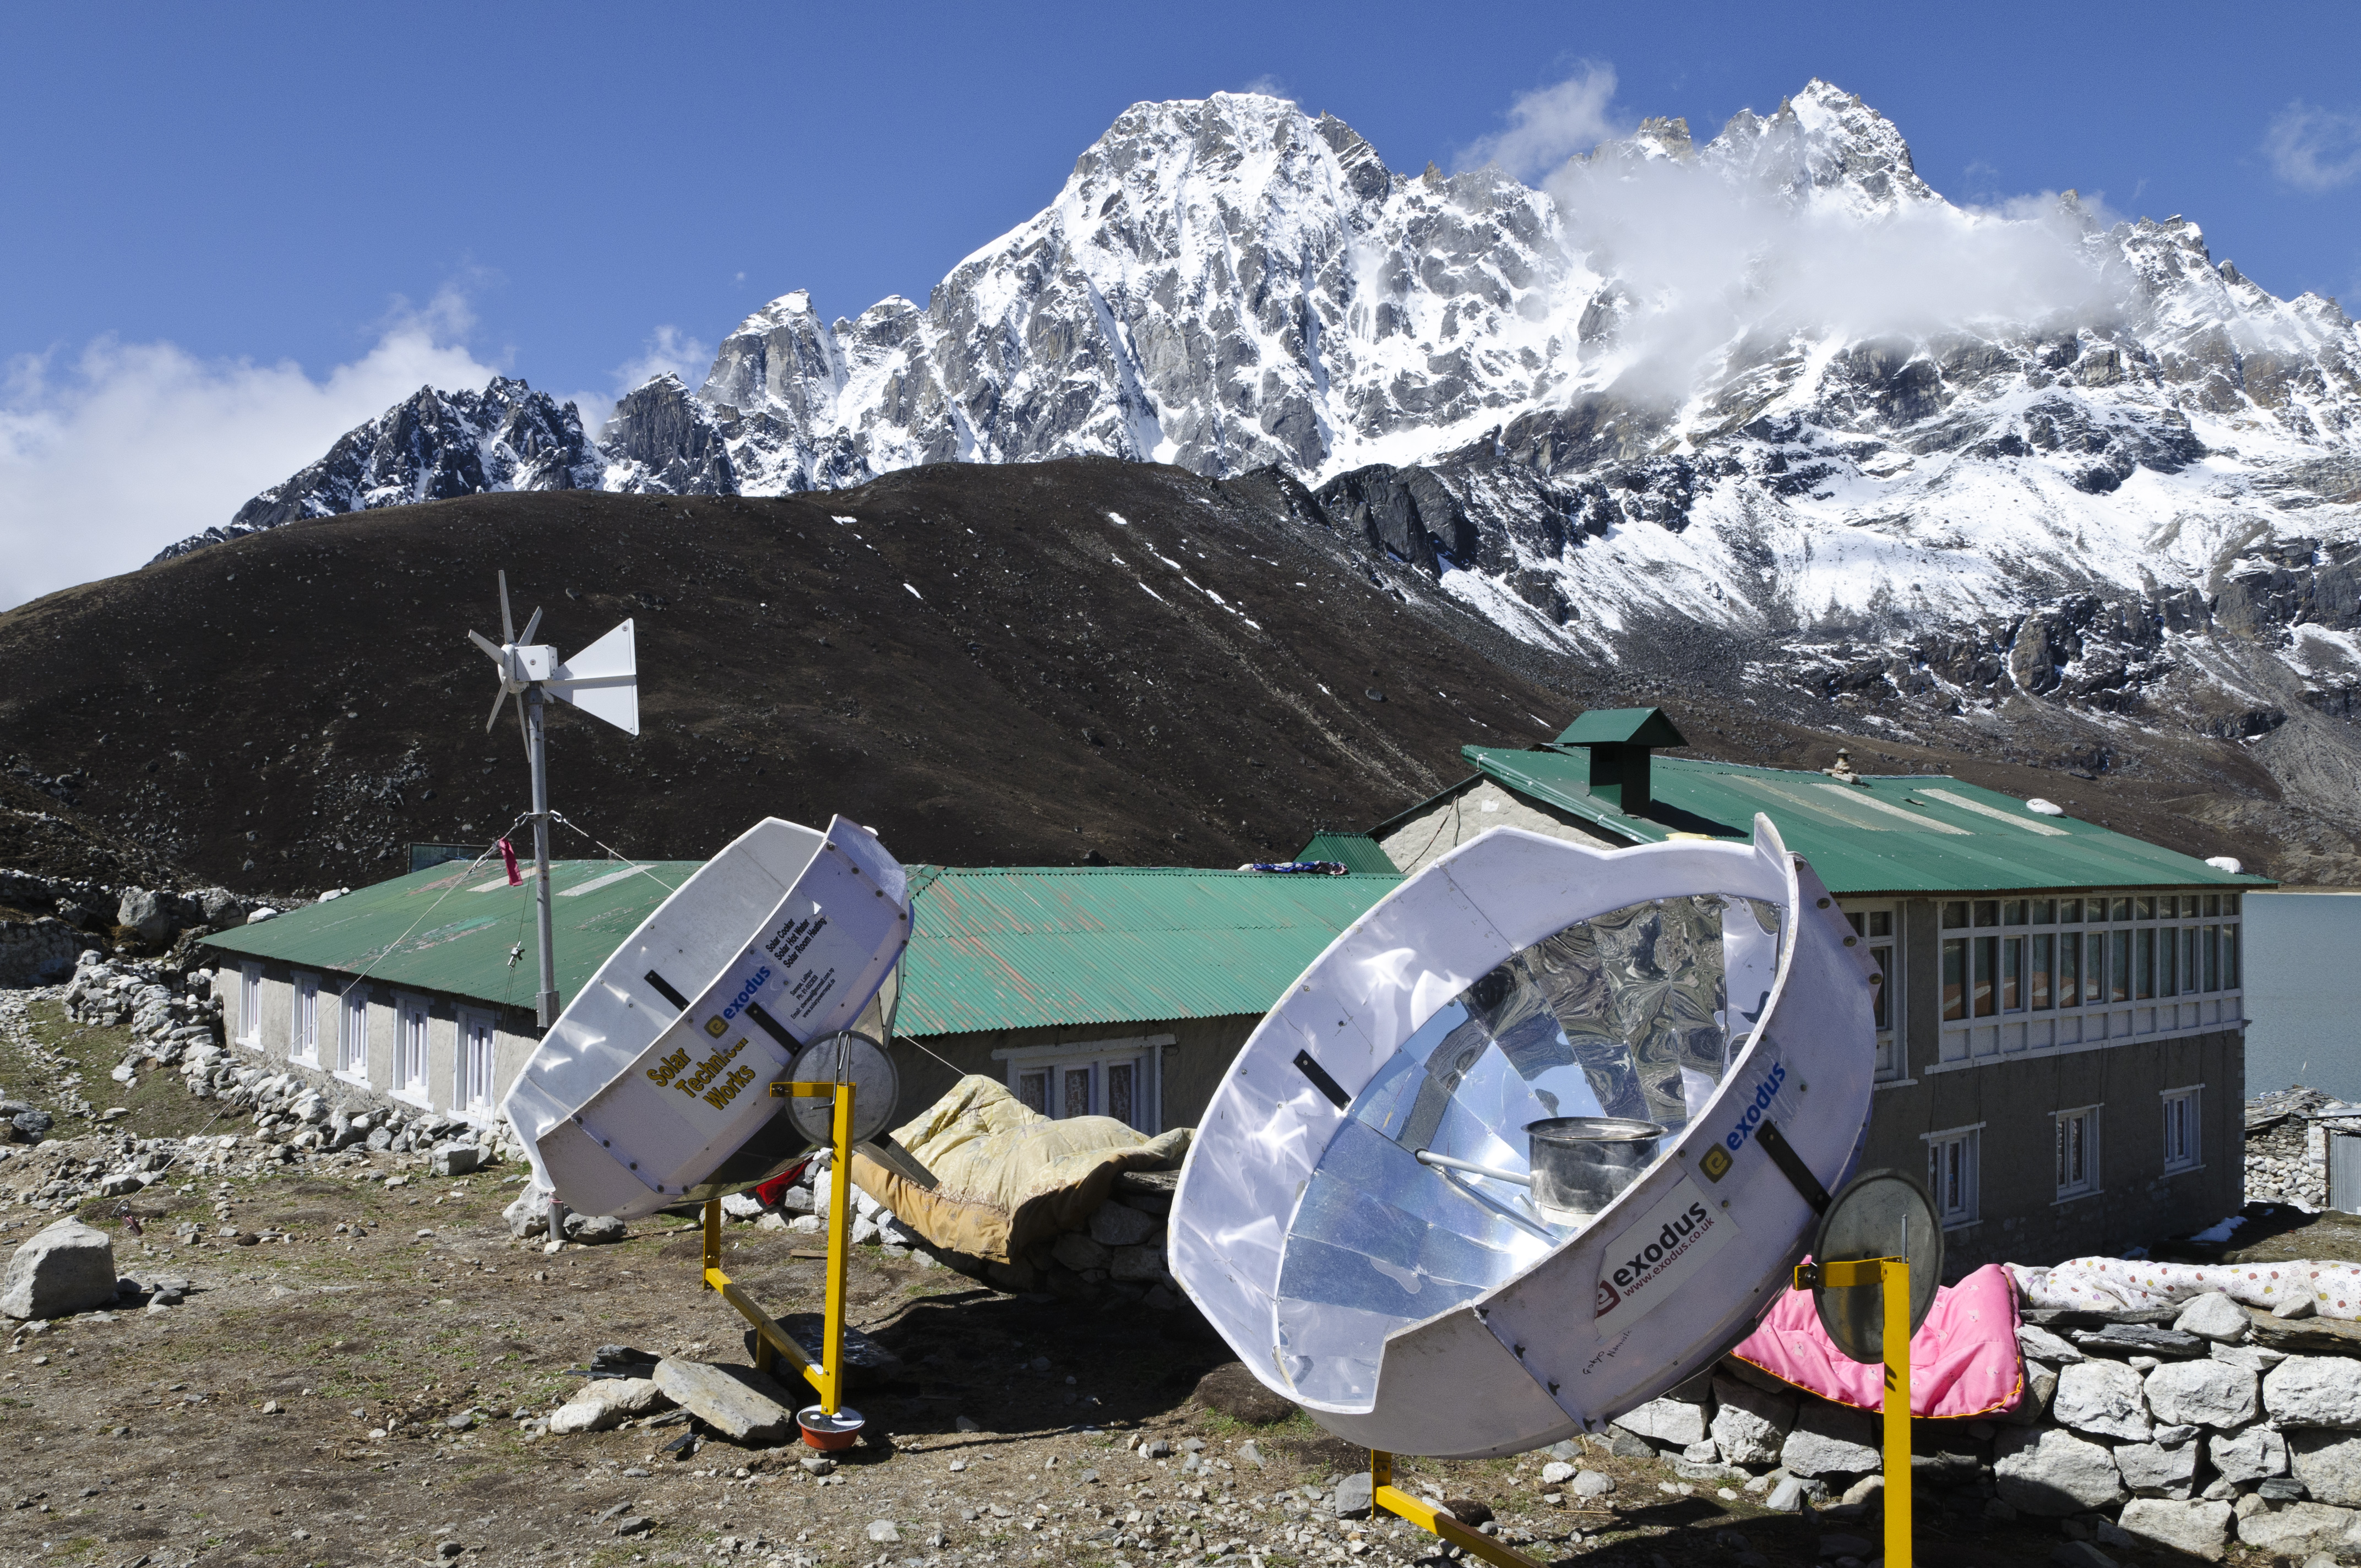 A solar cooker uses the energy of the sun to cook, reducing deforestation in remote areas of Nepal. Grant Dixon / Lonely Planet Images